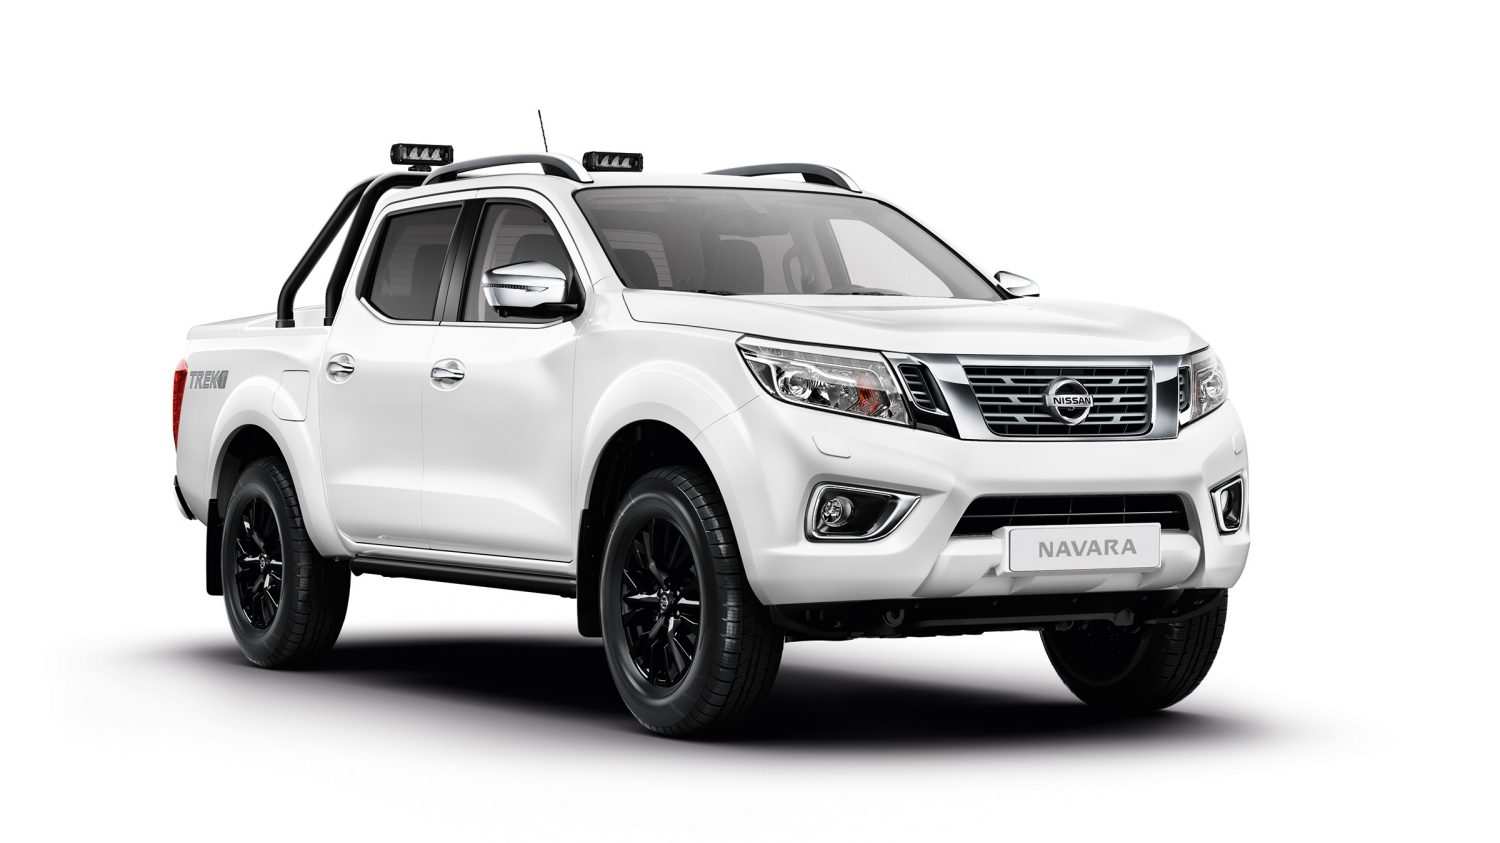 Nissan NP300 NAVARA Double Cab Visia - 3/4 front view